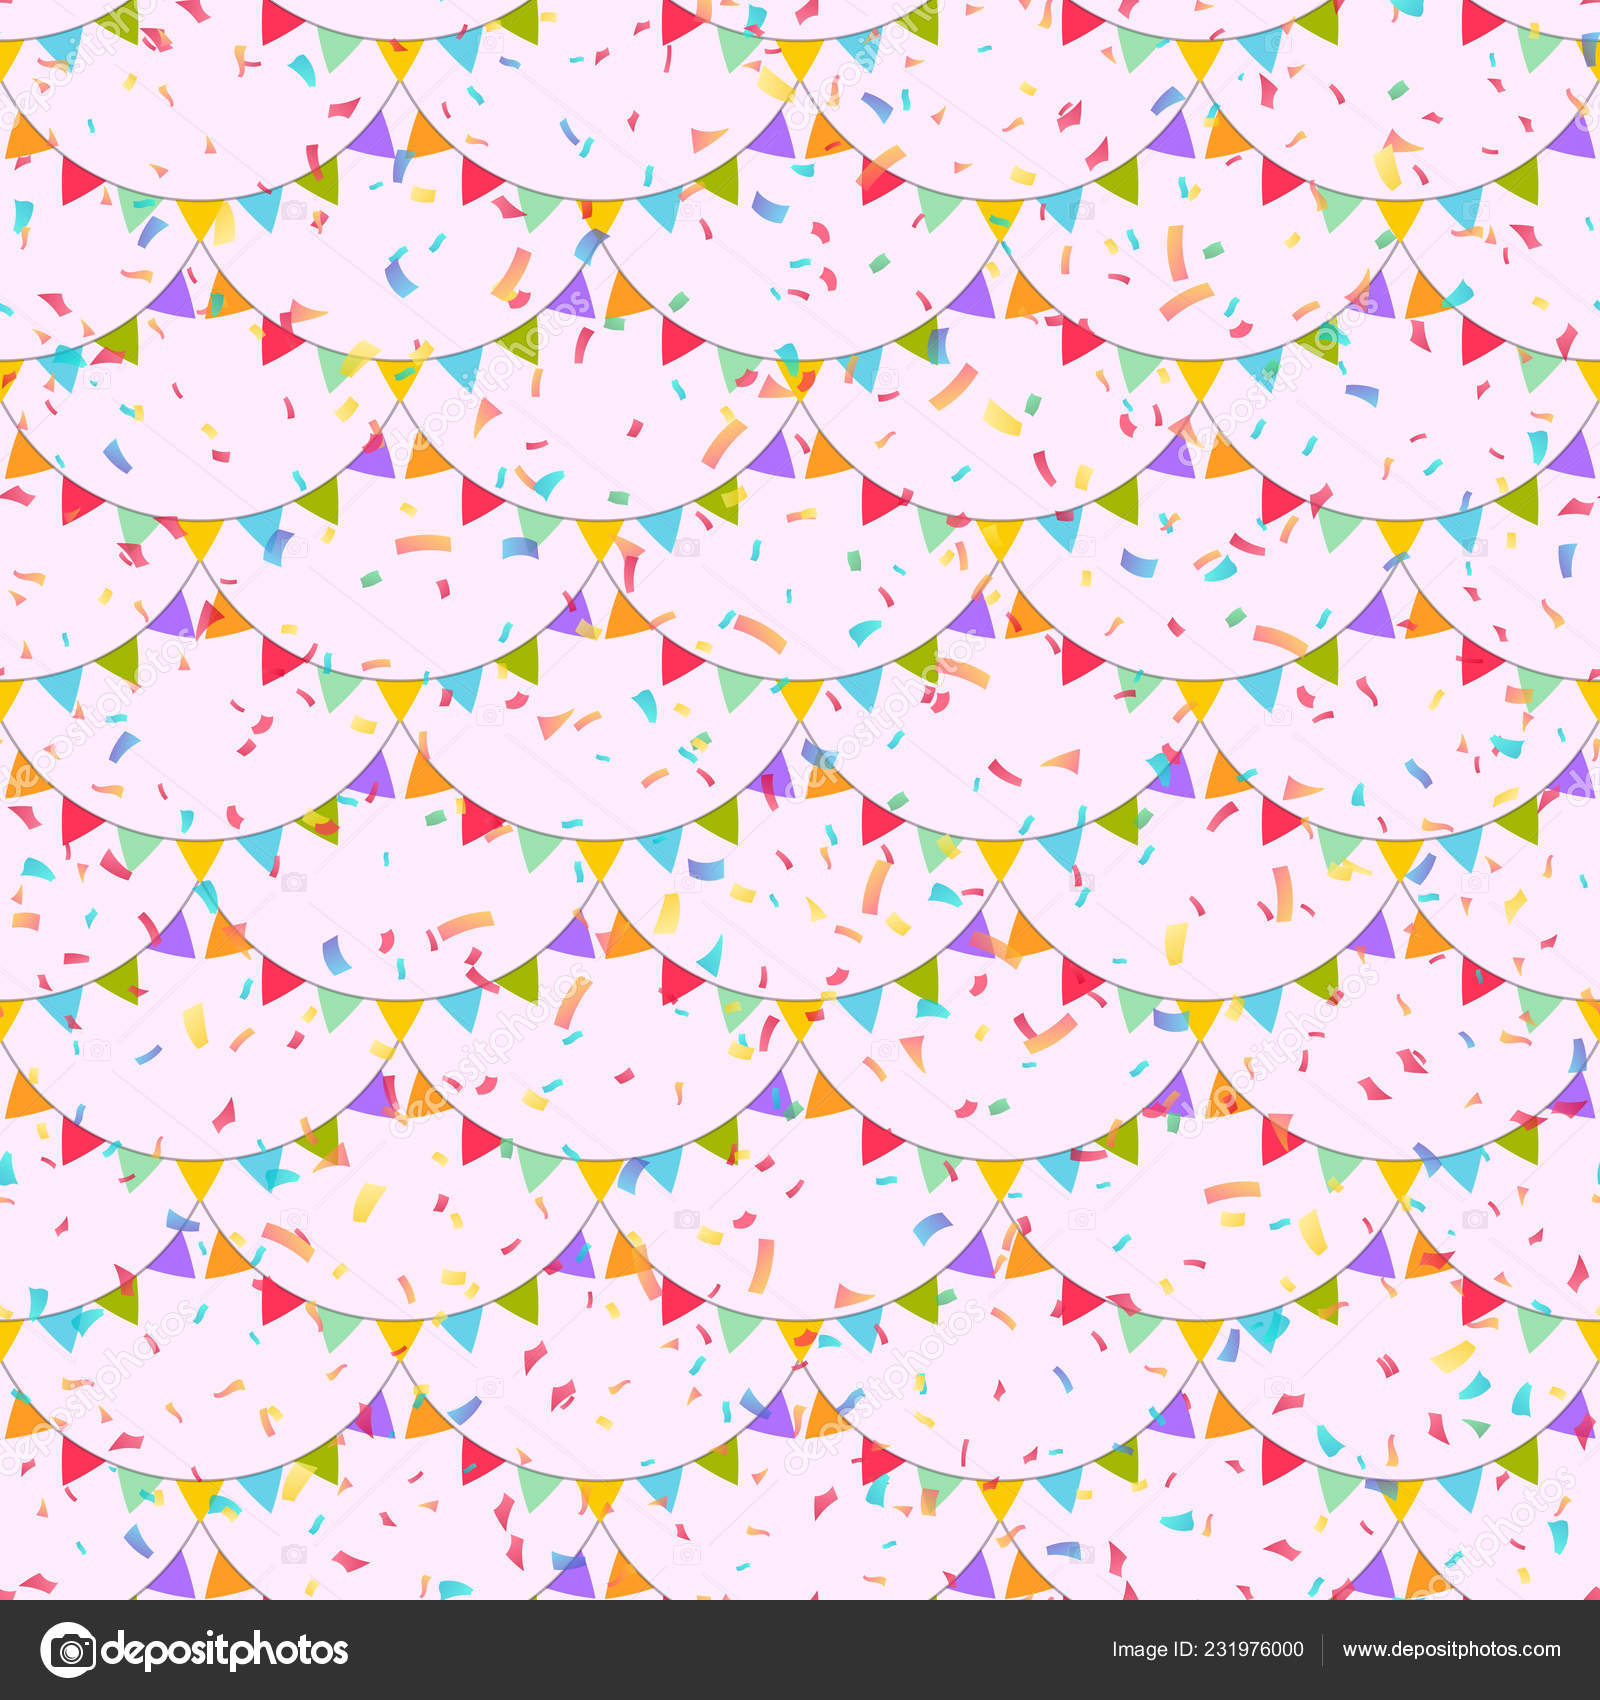 Garlands Colorful Festive Flags Background Falling Confetti